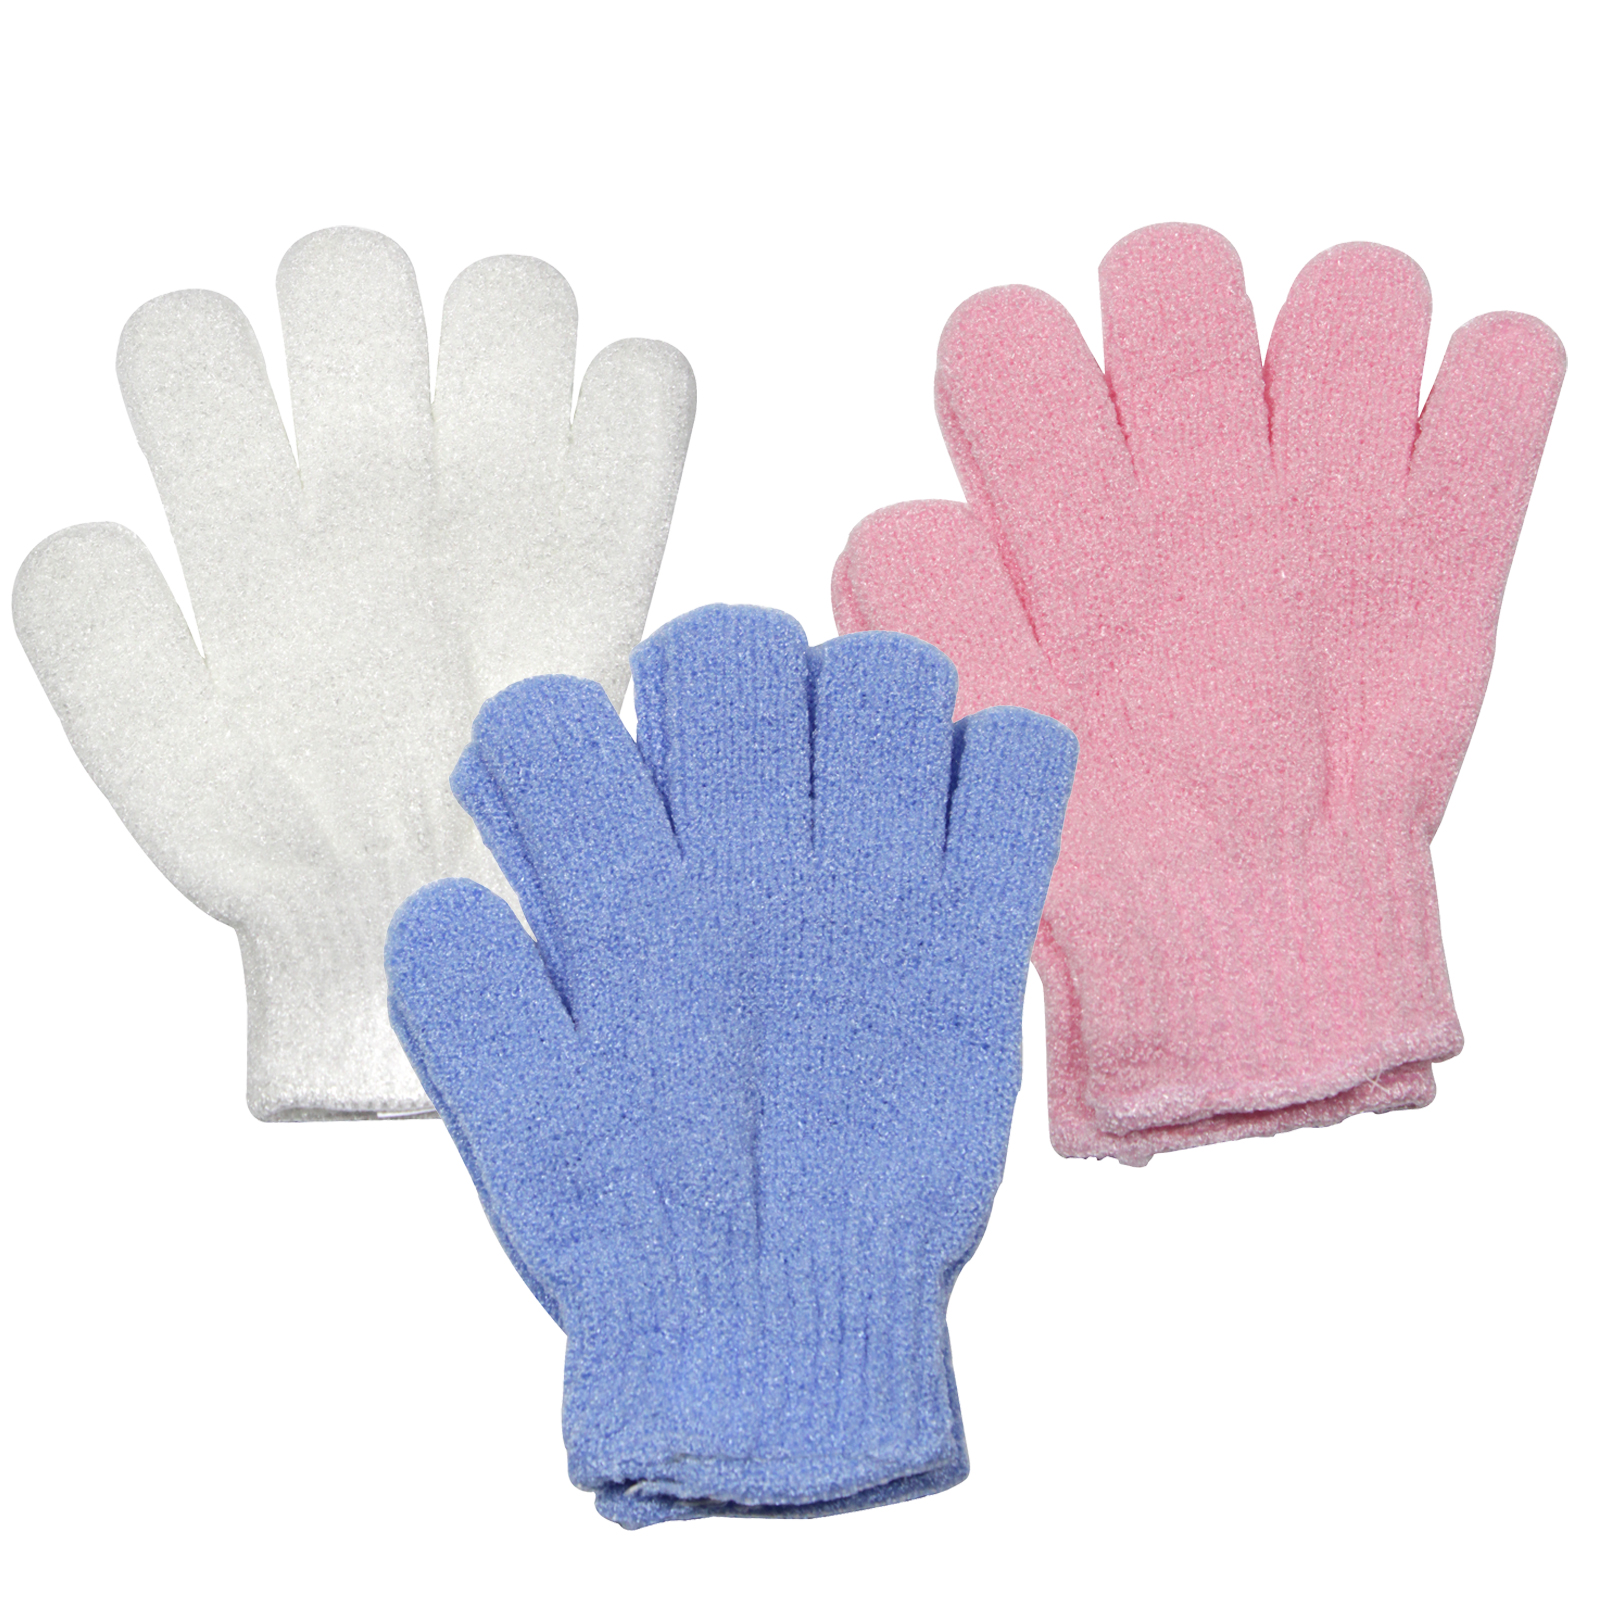 SIL EXFOLIATING GLOVES BLUE, PINK, WHITE